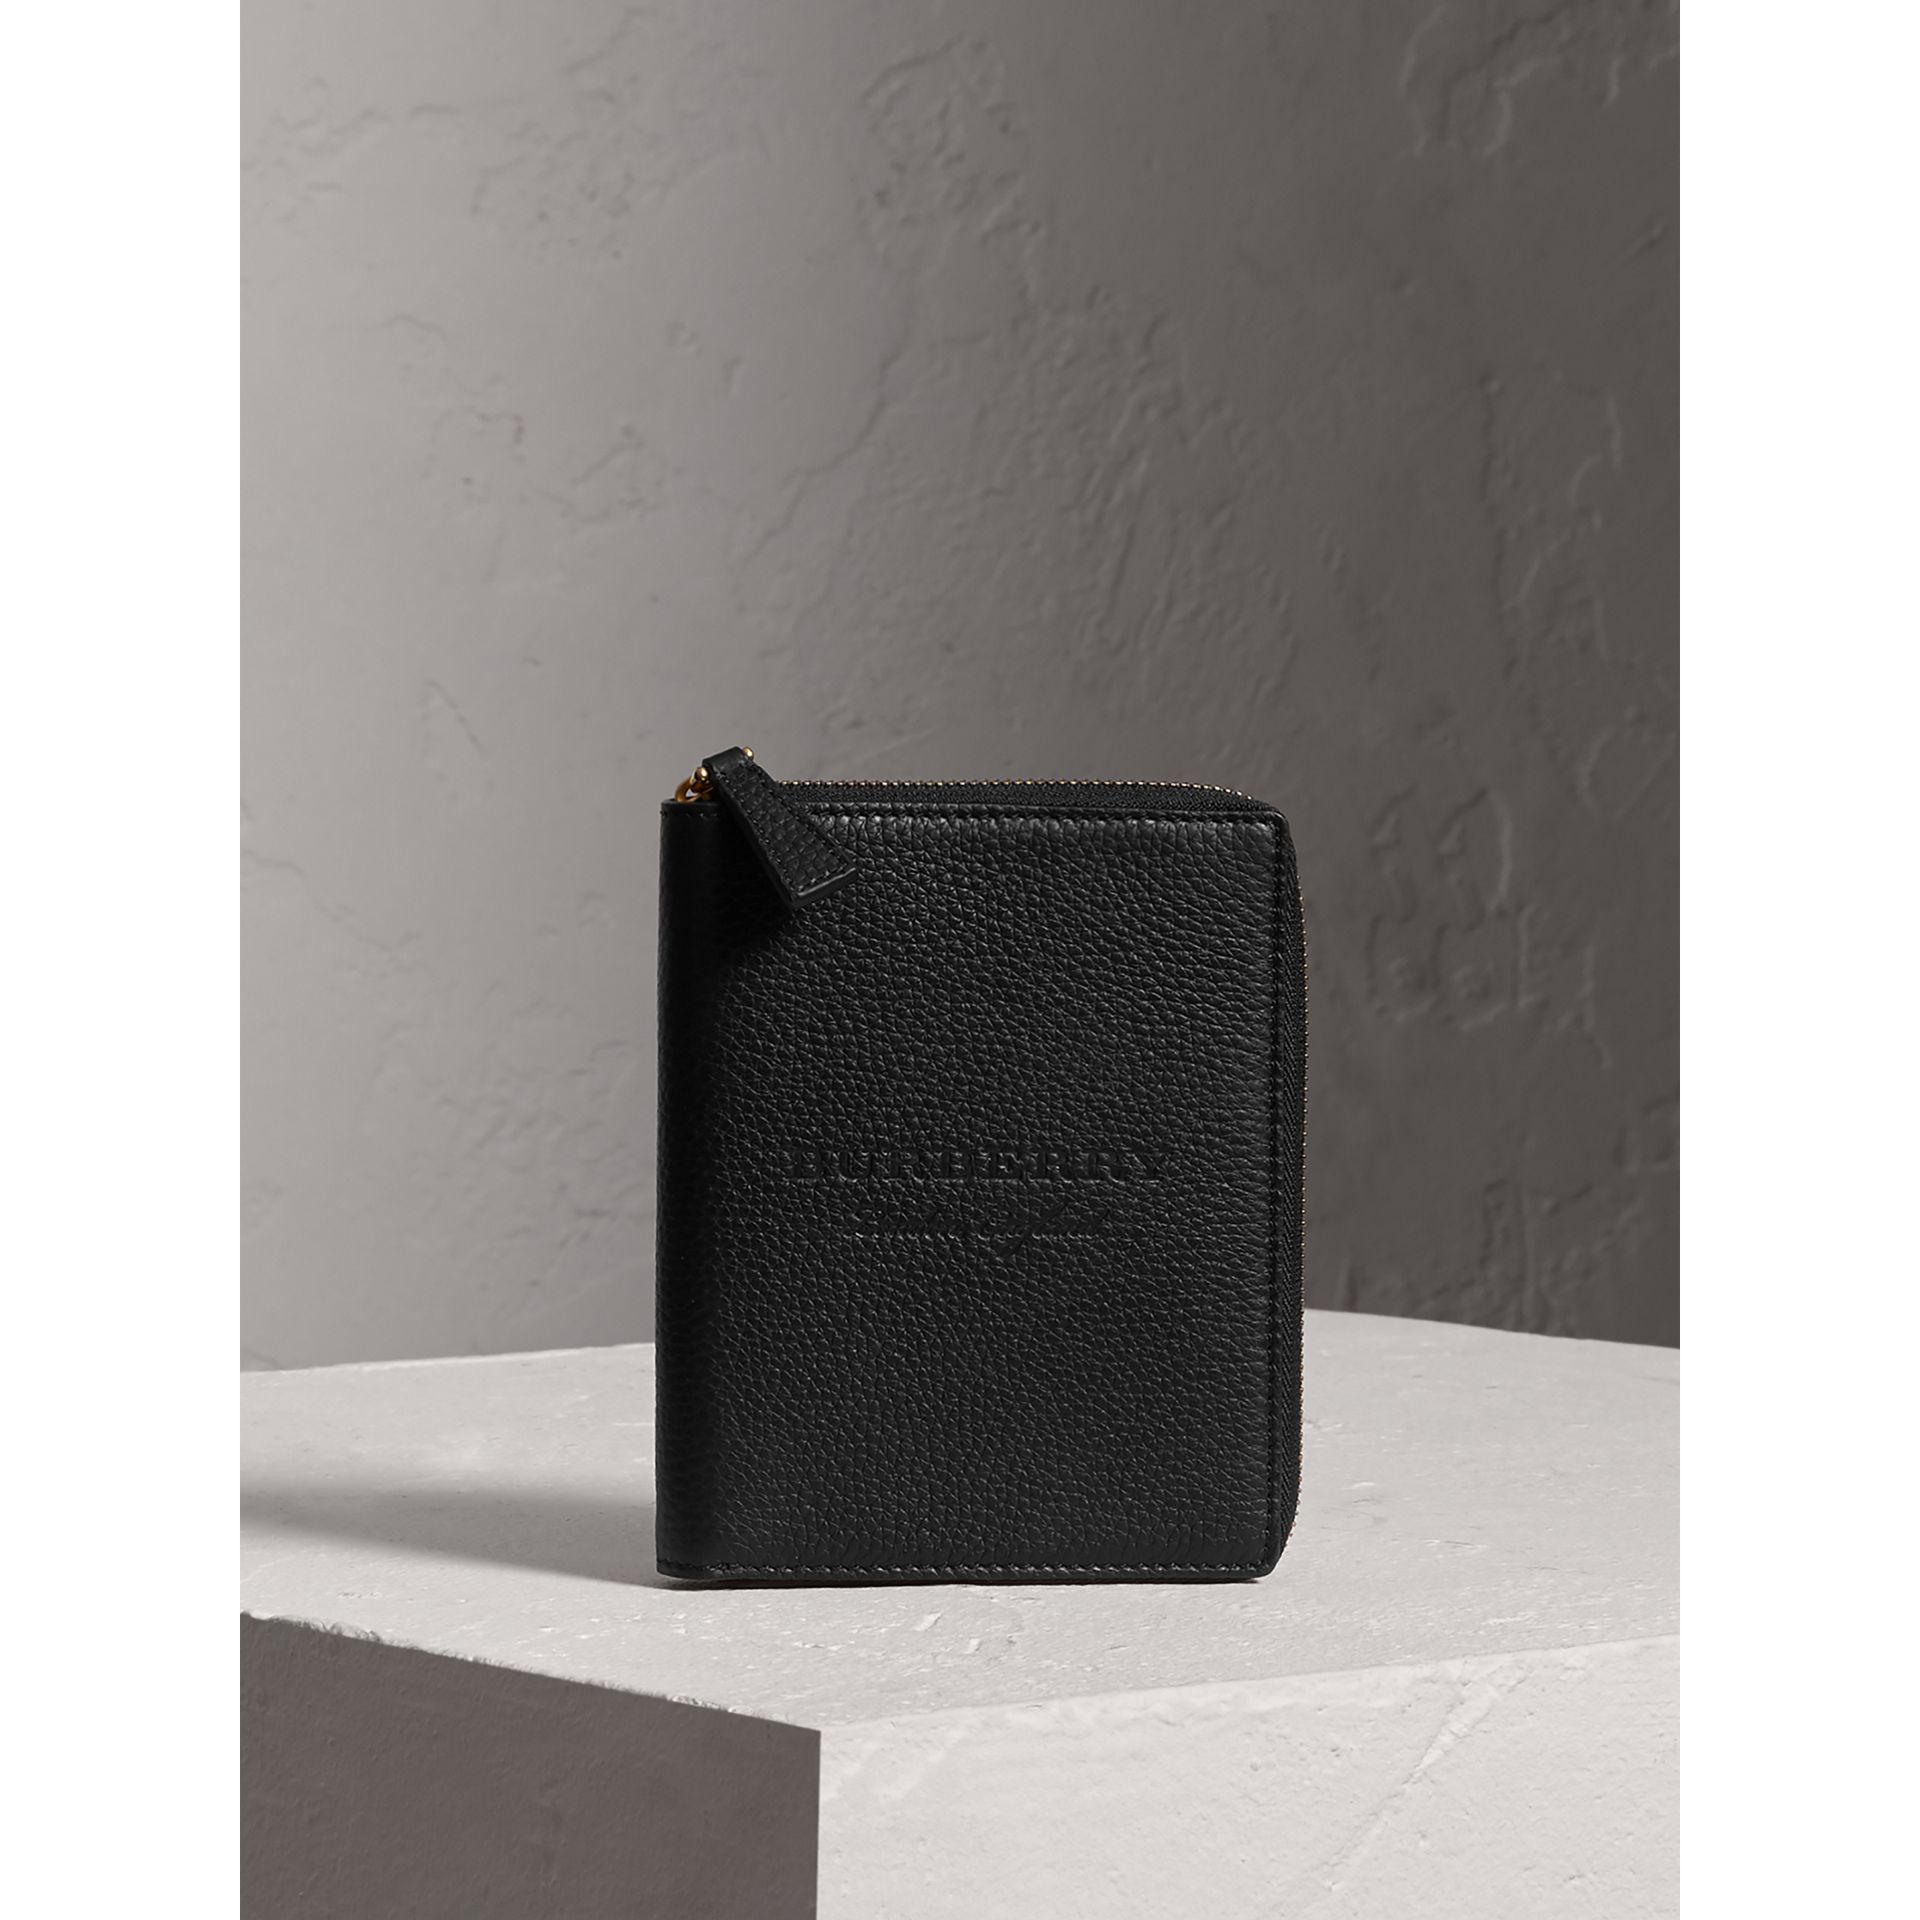 Embossed Grainy Leather Ziparound A6 Notebook Case in Black | Burberry Australia - gallery image 4